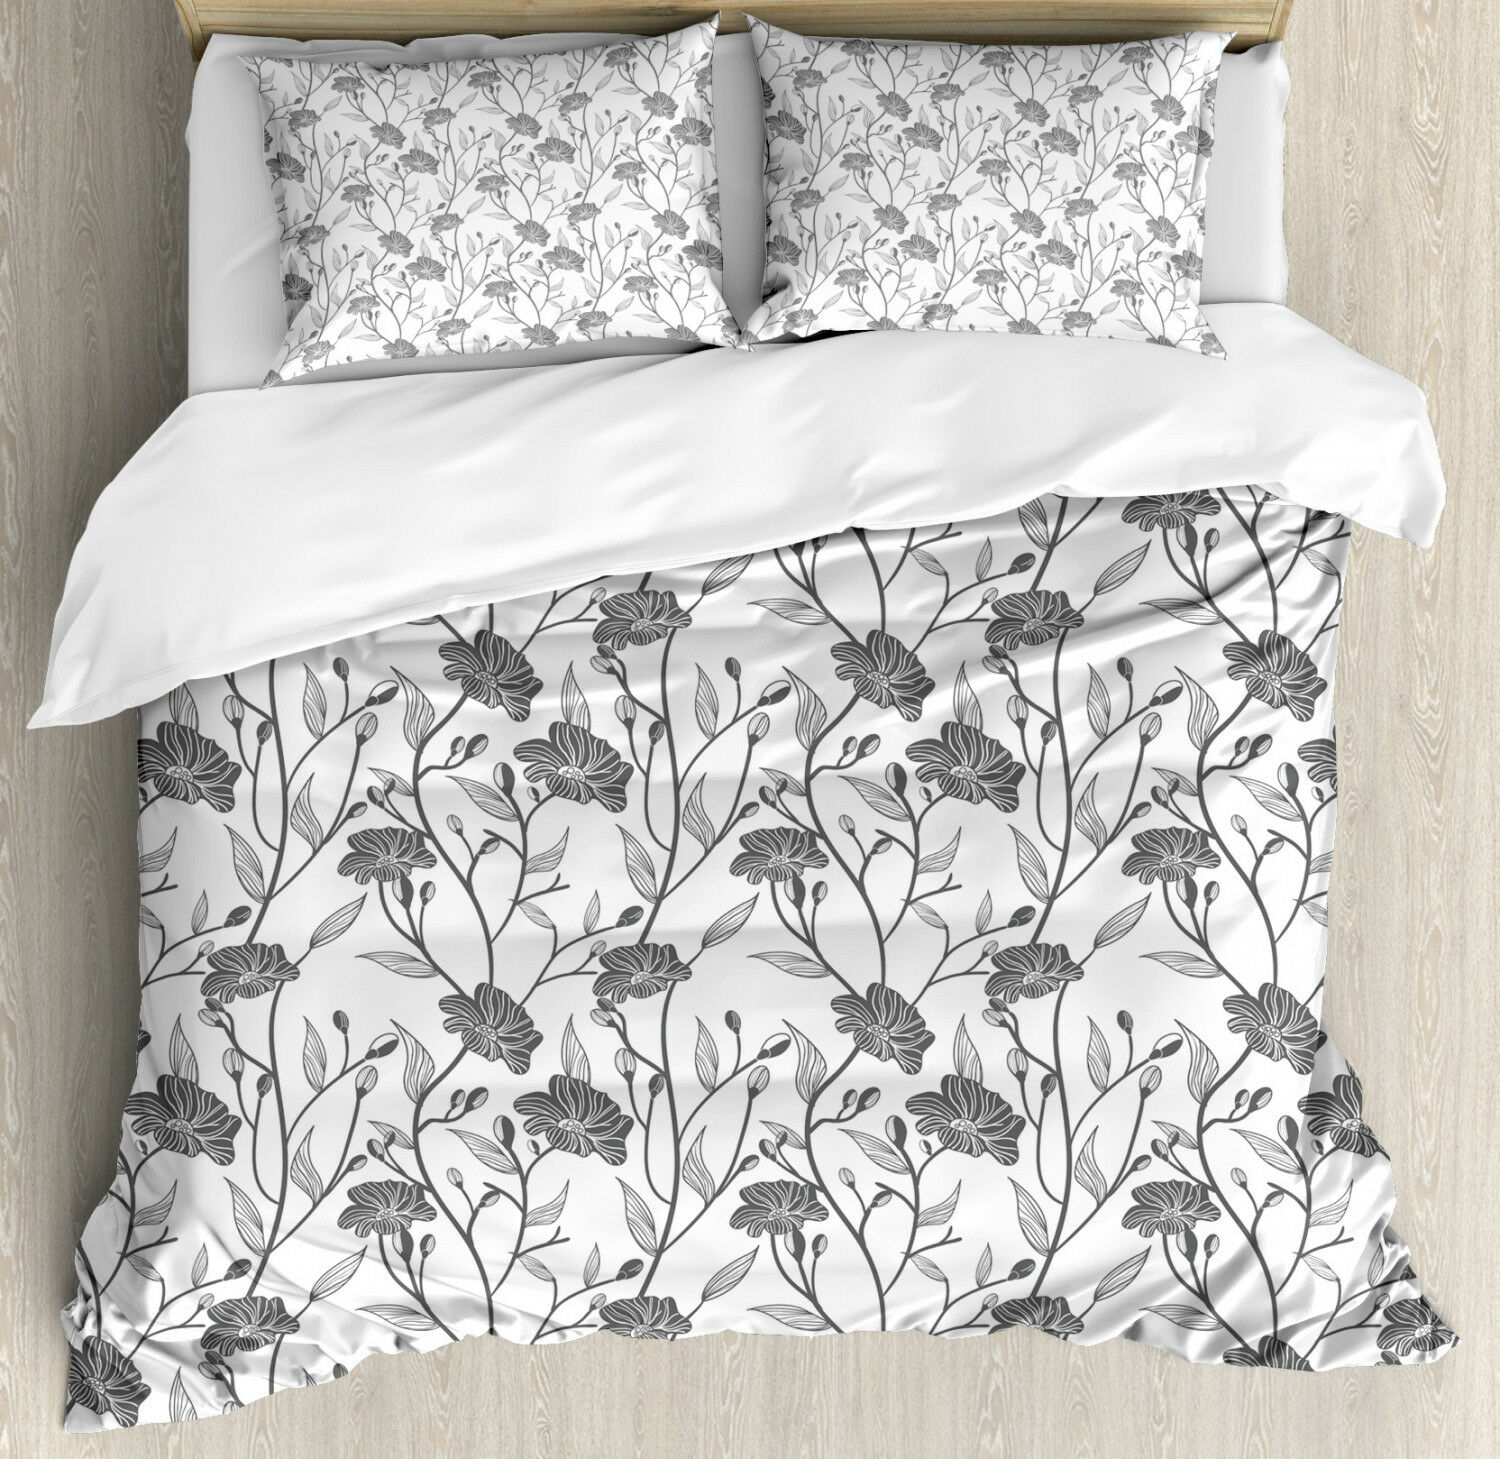 grigio Duvet Cover Set with Pillow Shams Blooming Flowers Buds Art Print